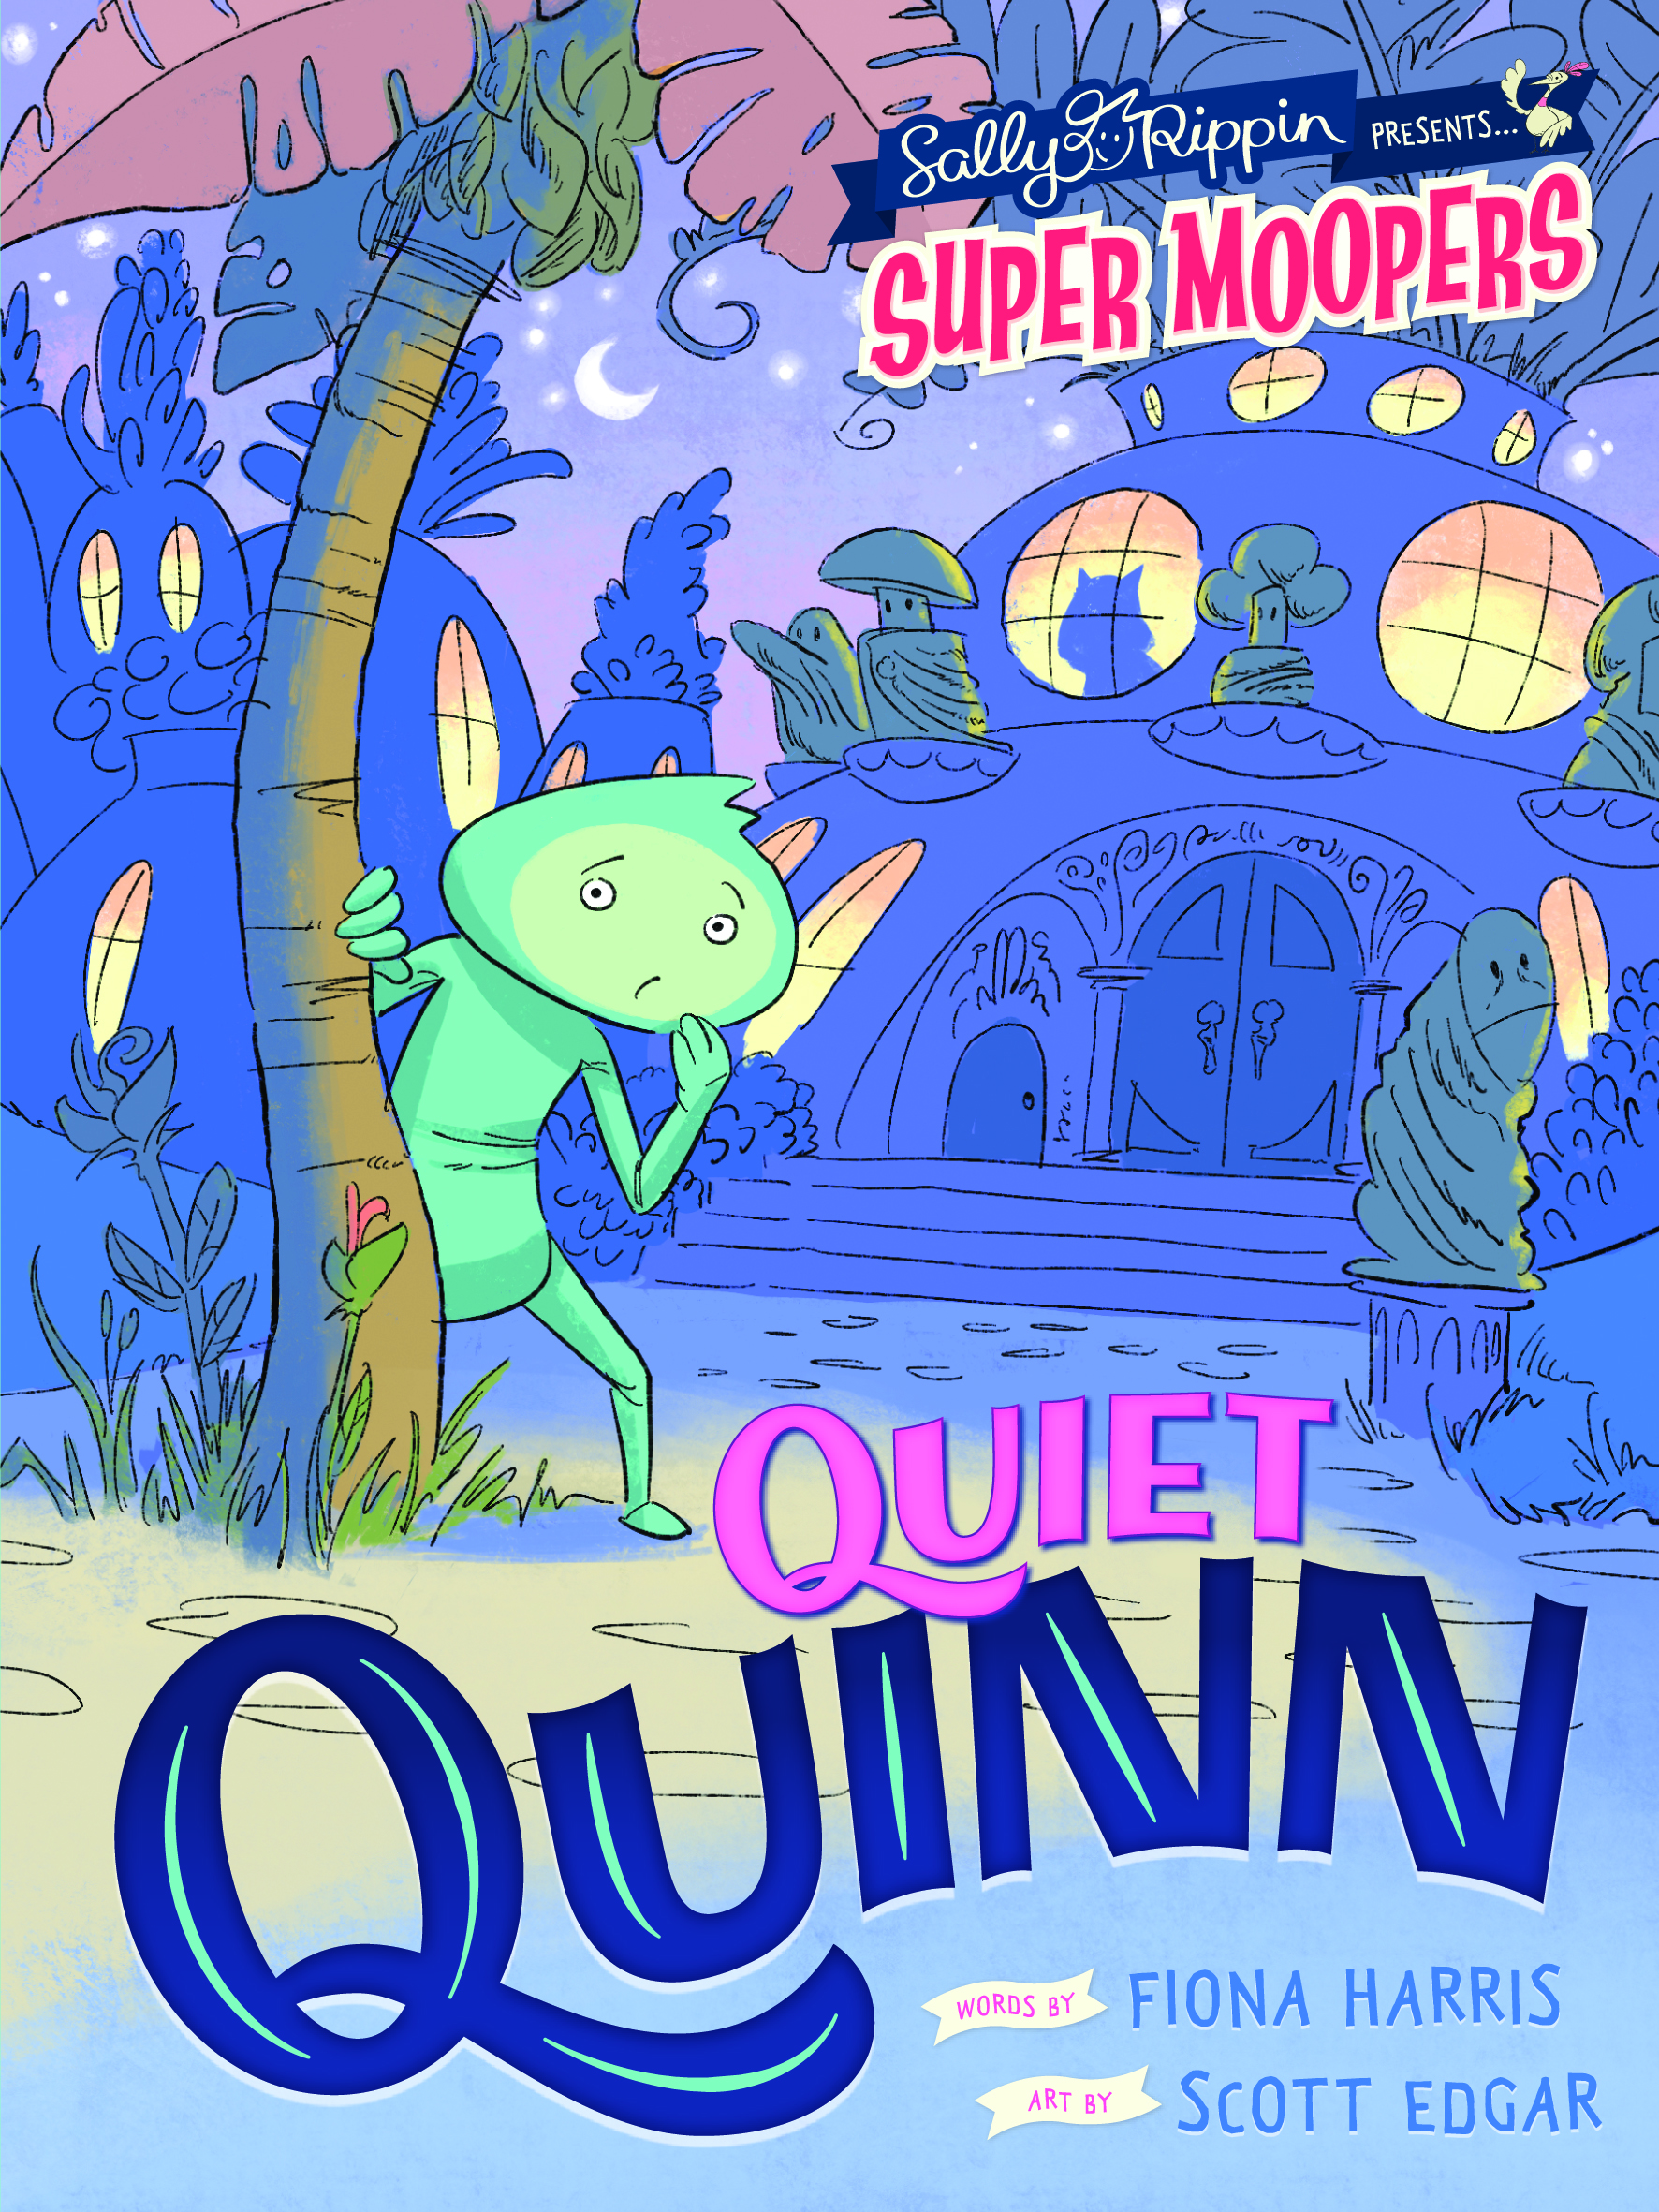 quiet quinn - Quinn just wants a little peace. It's not that he doesn't love busy Moopertown. It's just that he prefers his quiet life, and his work at Moopertown Museum. But Quinn is so quiet that he's sometimes overlooked by the other Moopers. And sometimes they forget he's even there! Poor Quinn. How does a quiet Mooper fit in a rowdy place like Moopertown?